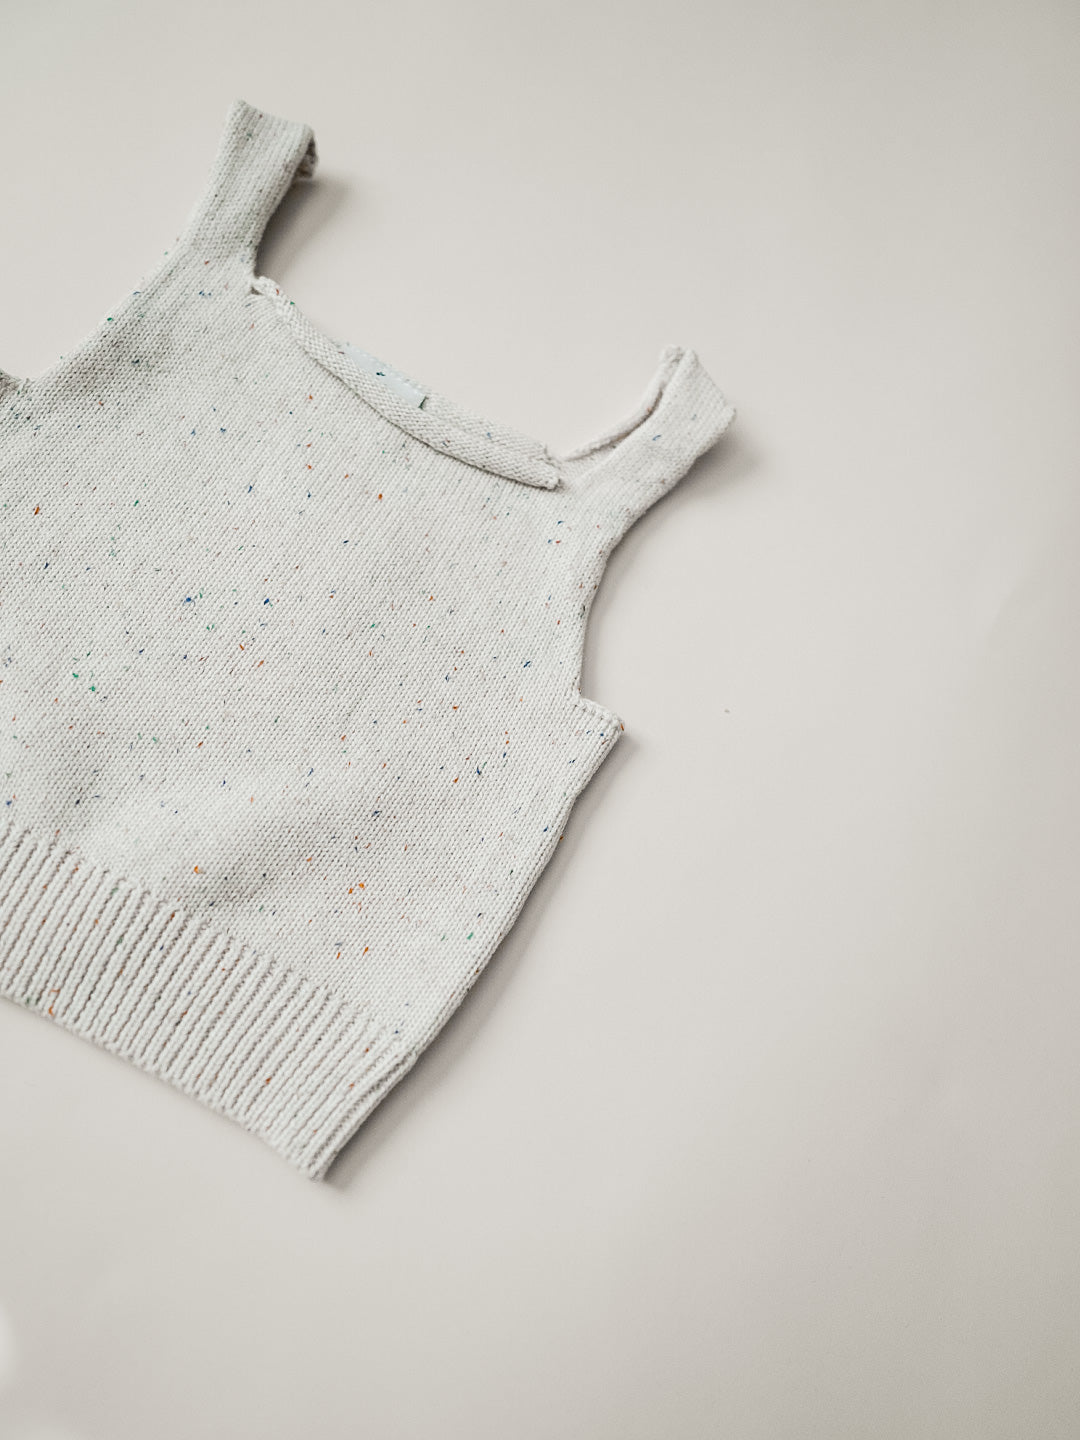 Speckled Knit Tank - Confetti